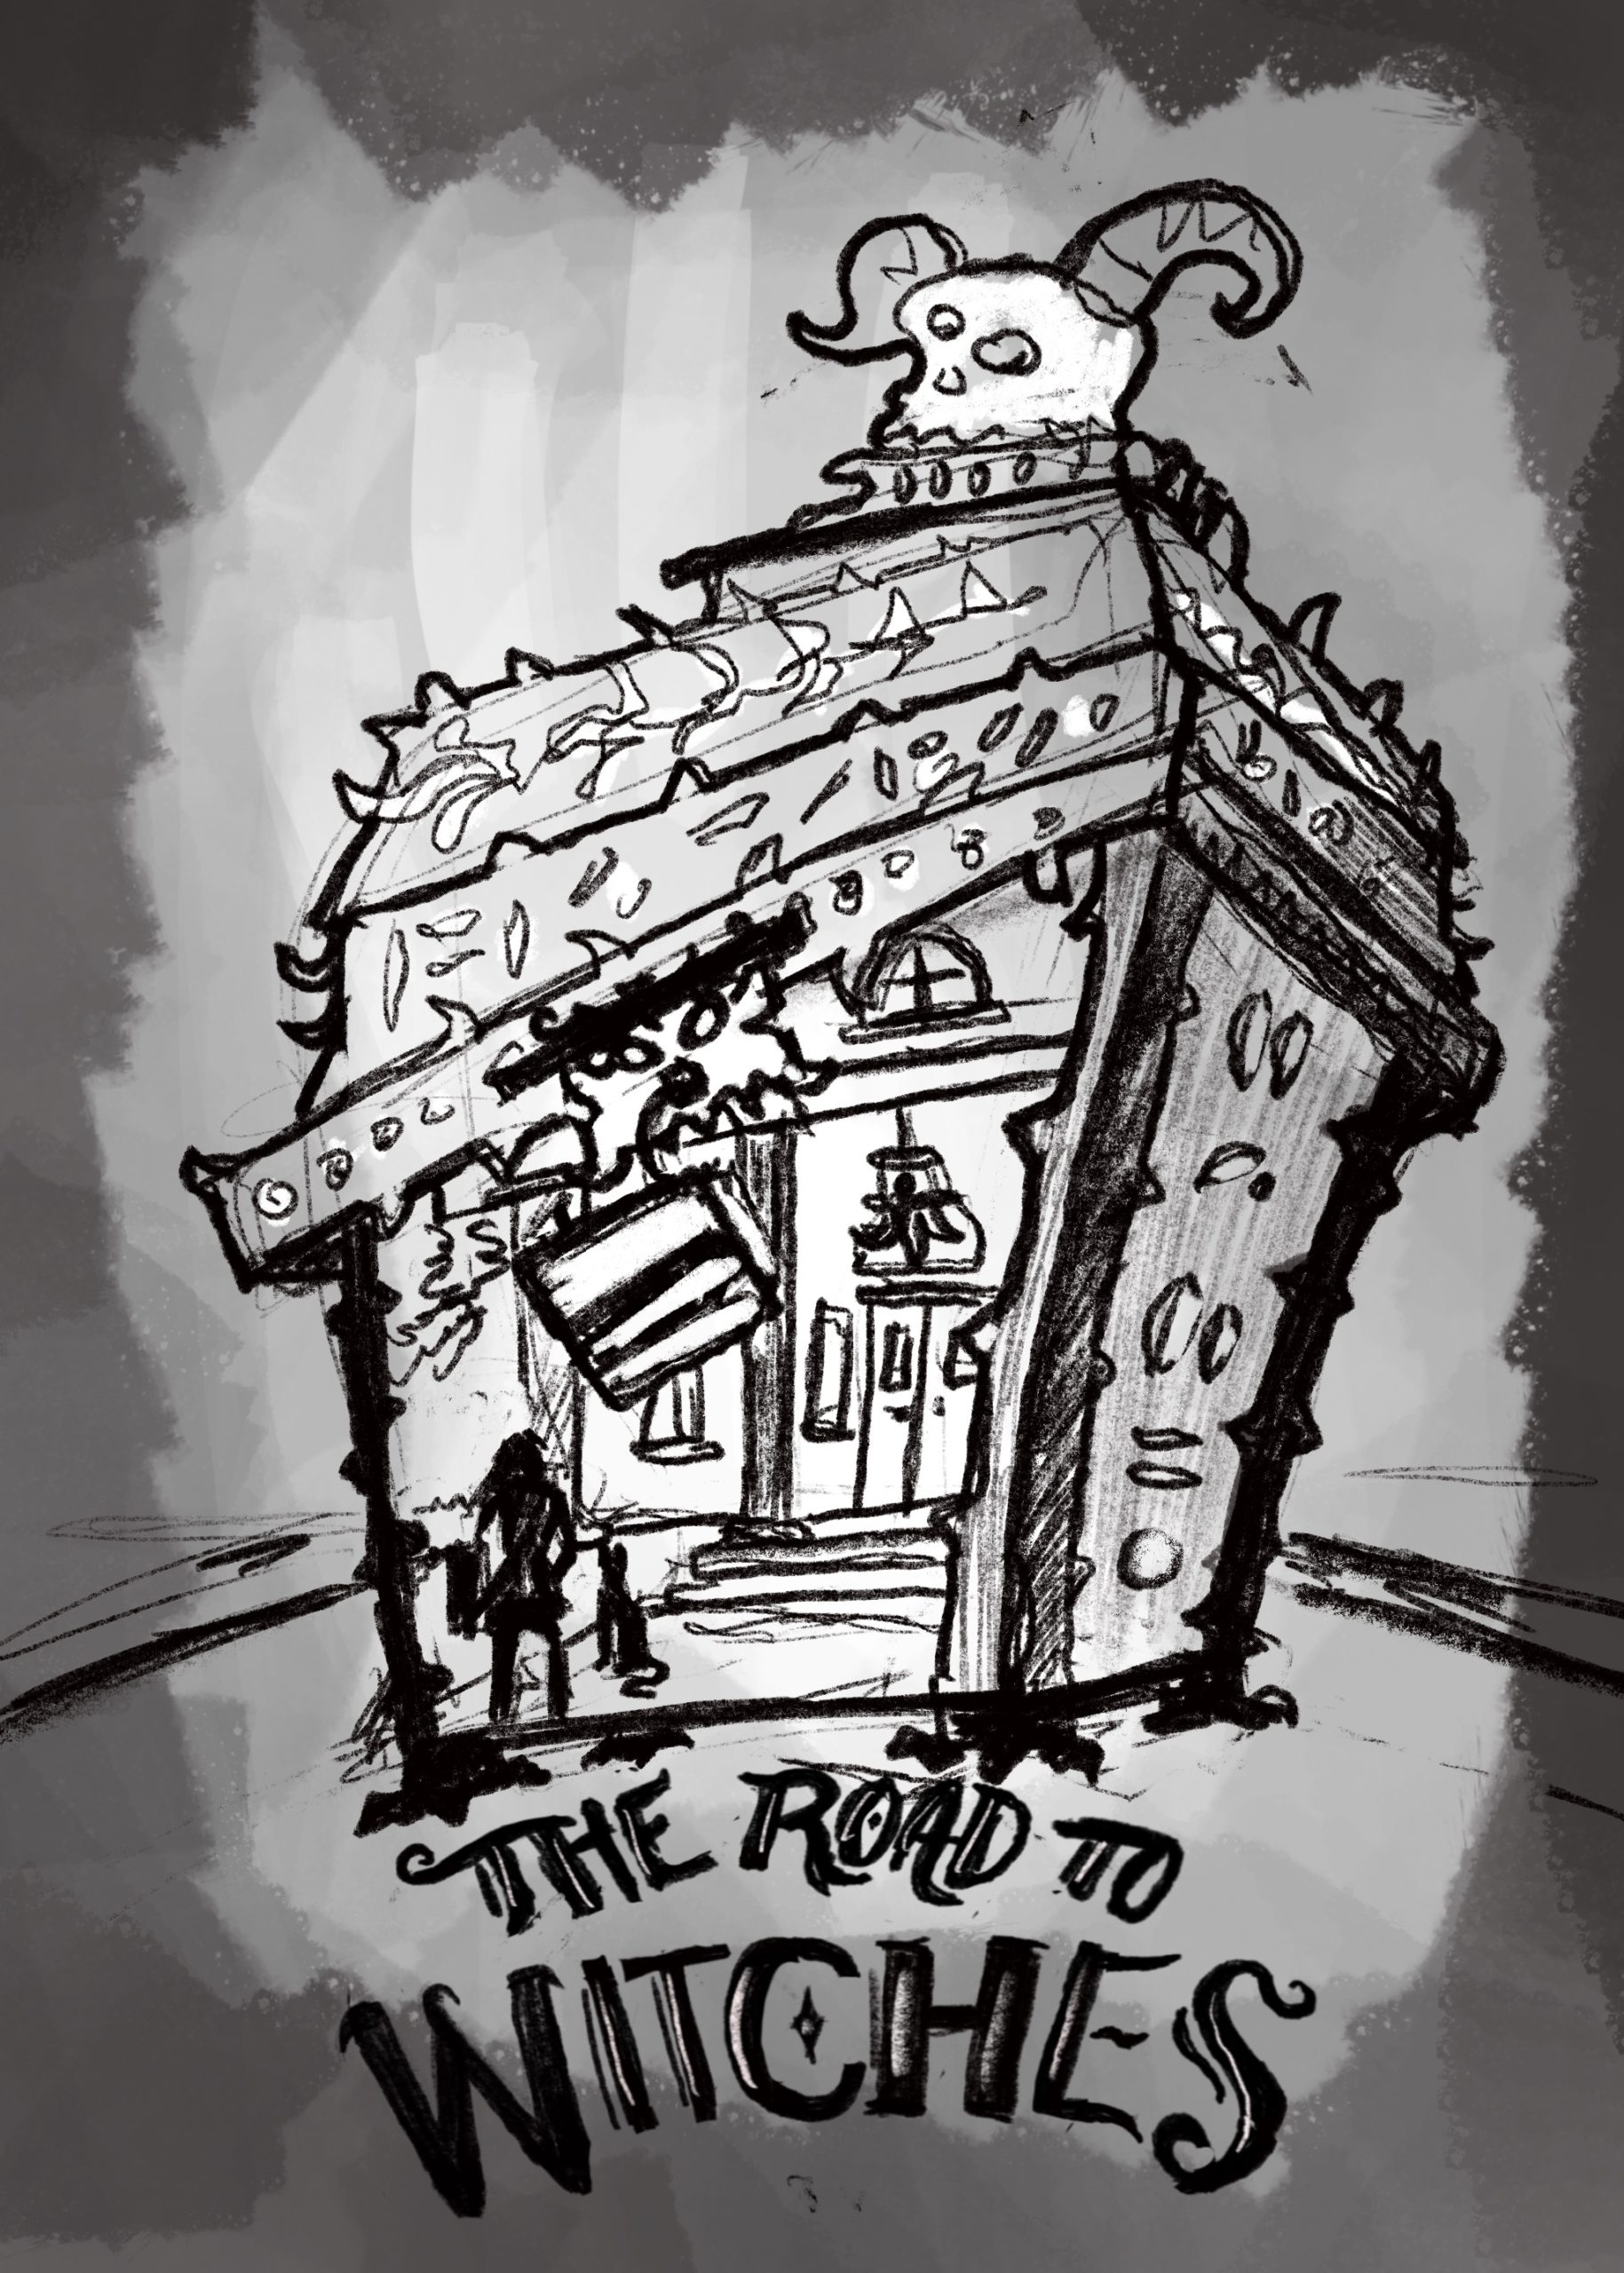 Road To Witches - Sketch 3